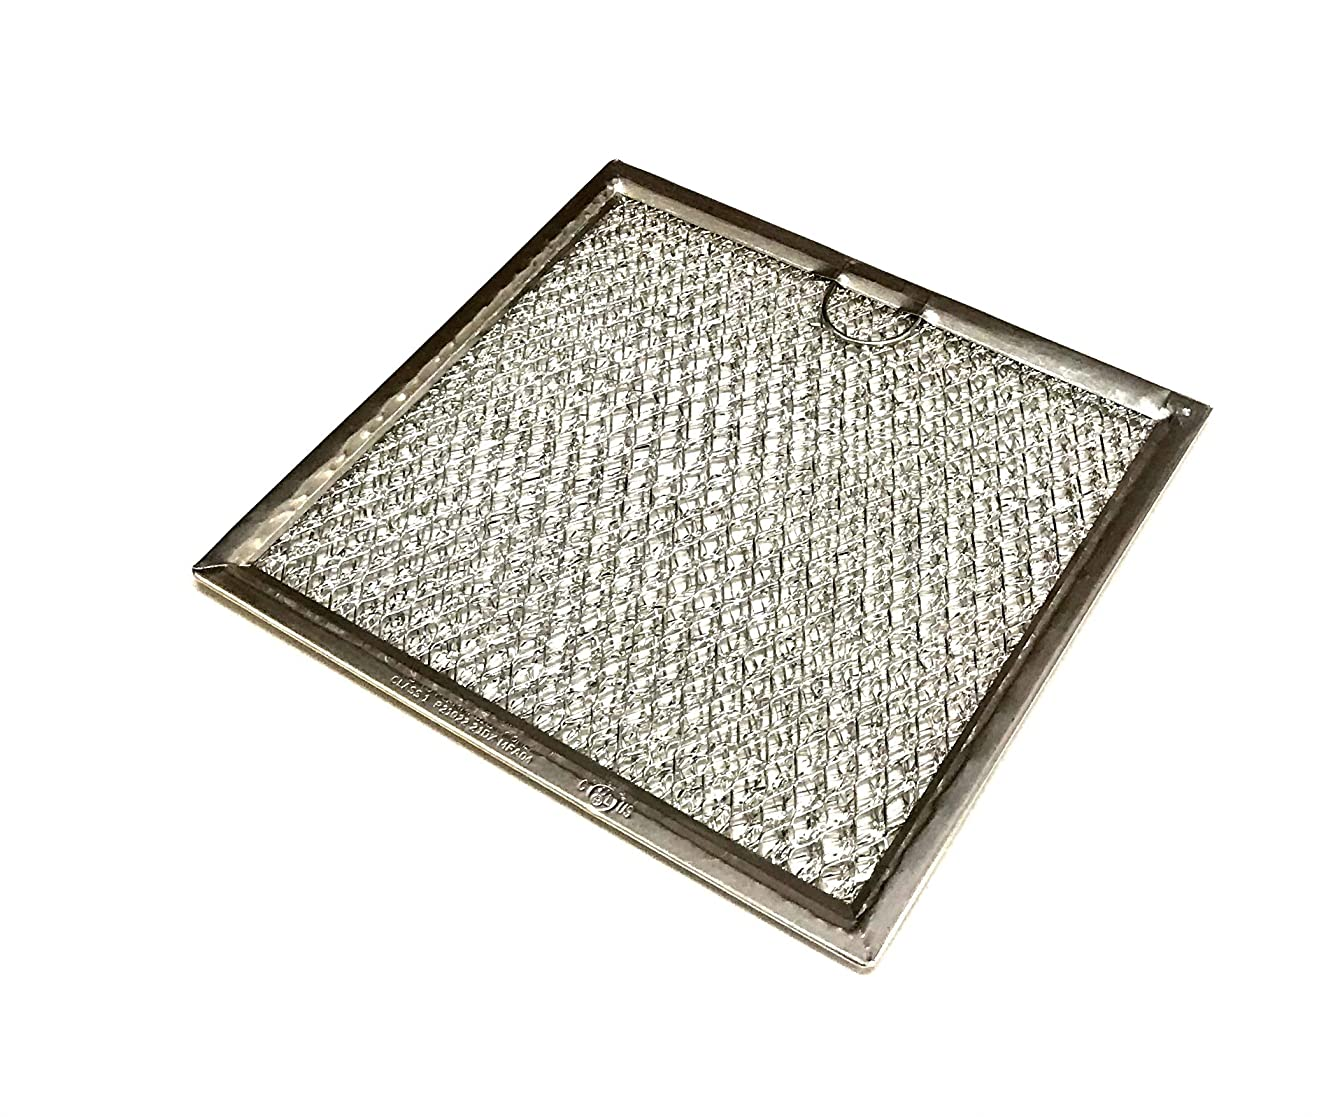 OEM GE Microwave Grease Filter Shipped with JVM7195RF1SB, JVM7195RF1SS, JVM7195RK1SS, JVM7195SF1SS, JVM7195SK1SS